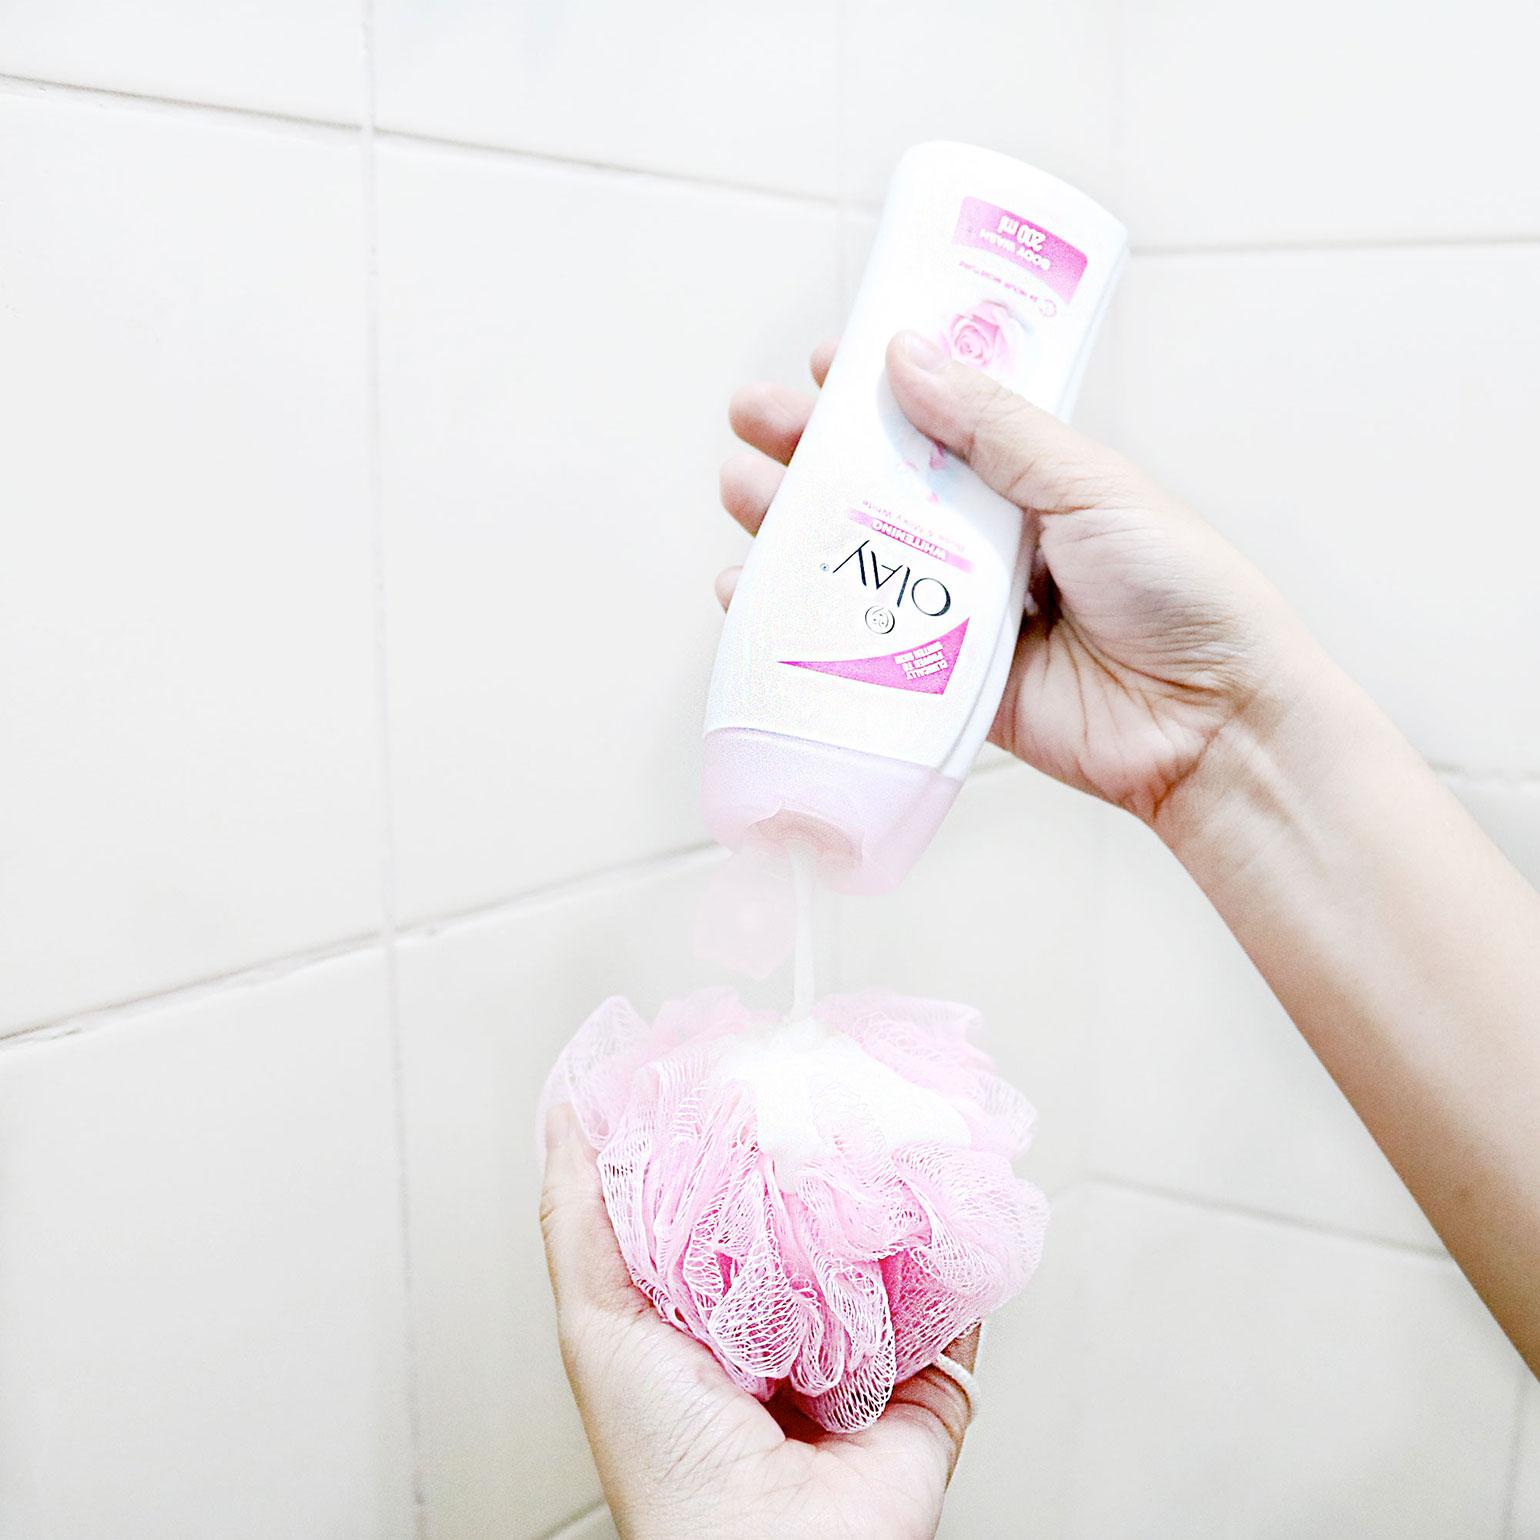 2 Olay Whitening Rose and Milky White Body Wash - She Sings Beauty by Gen-zel